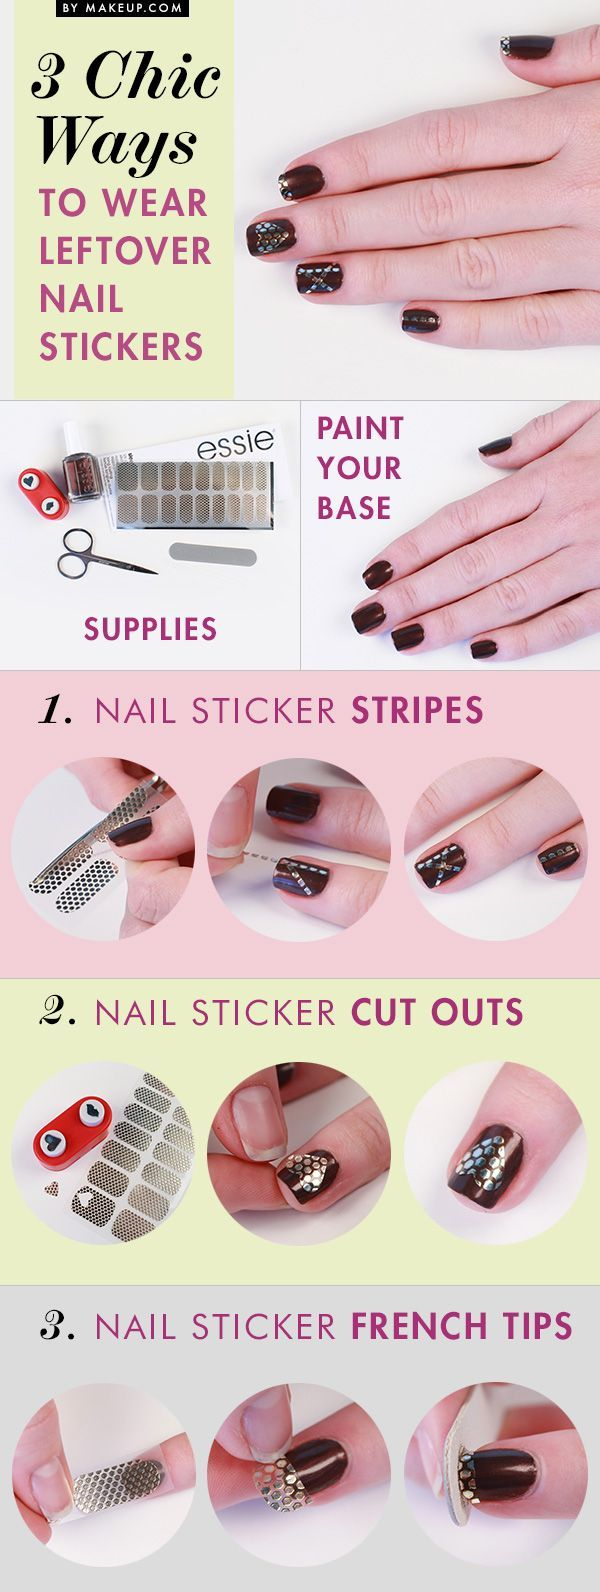 Chic ways to use left over nail stickers and wraps..// In need of a detox? 10% off using our discount code 'Pin10' at www.ThinTea.com.au